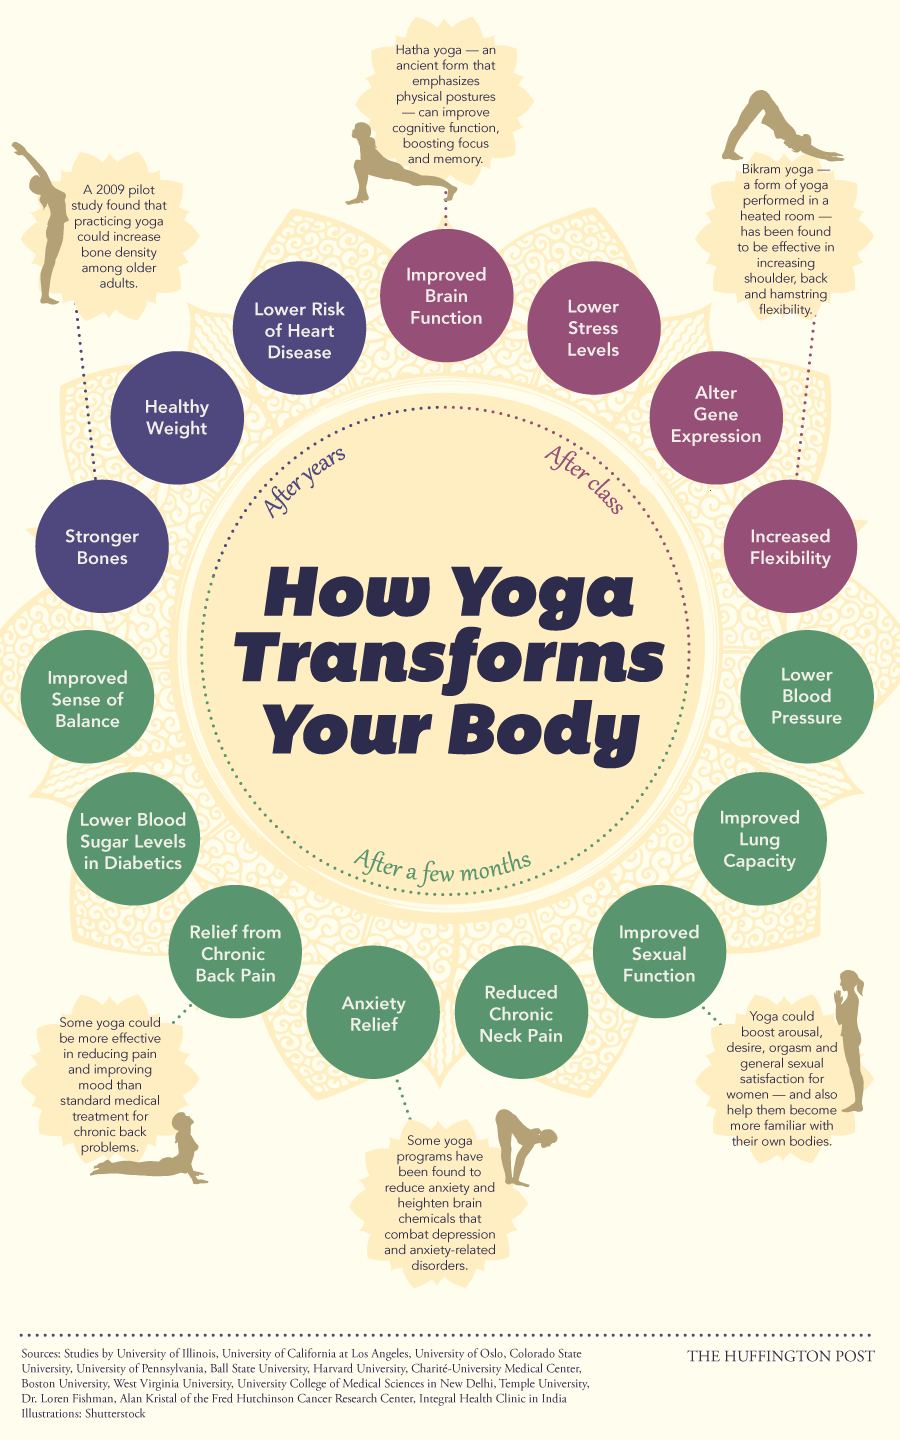 How Yoga Transforms Your Body - It's a Great Compliment to Acupuncture in New Orleans